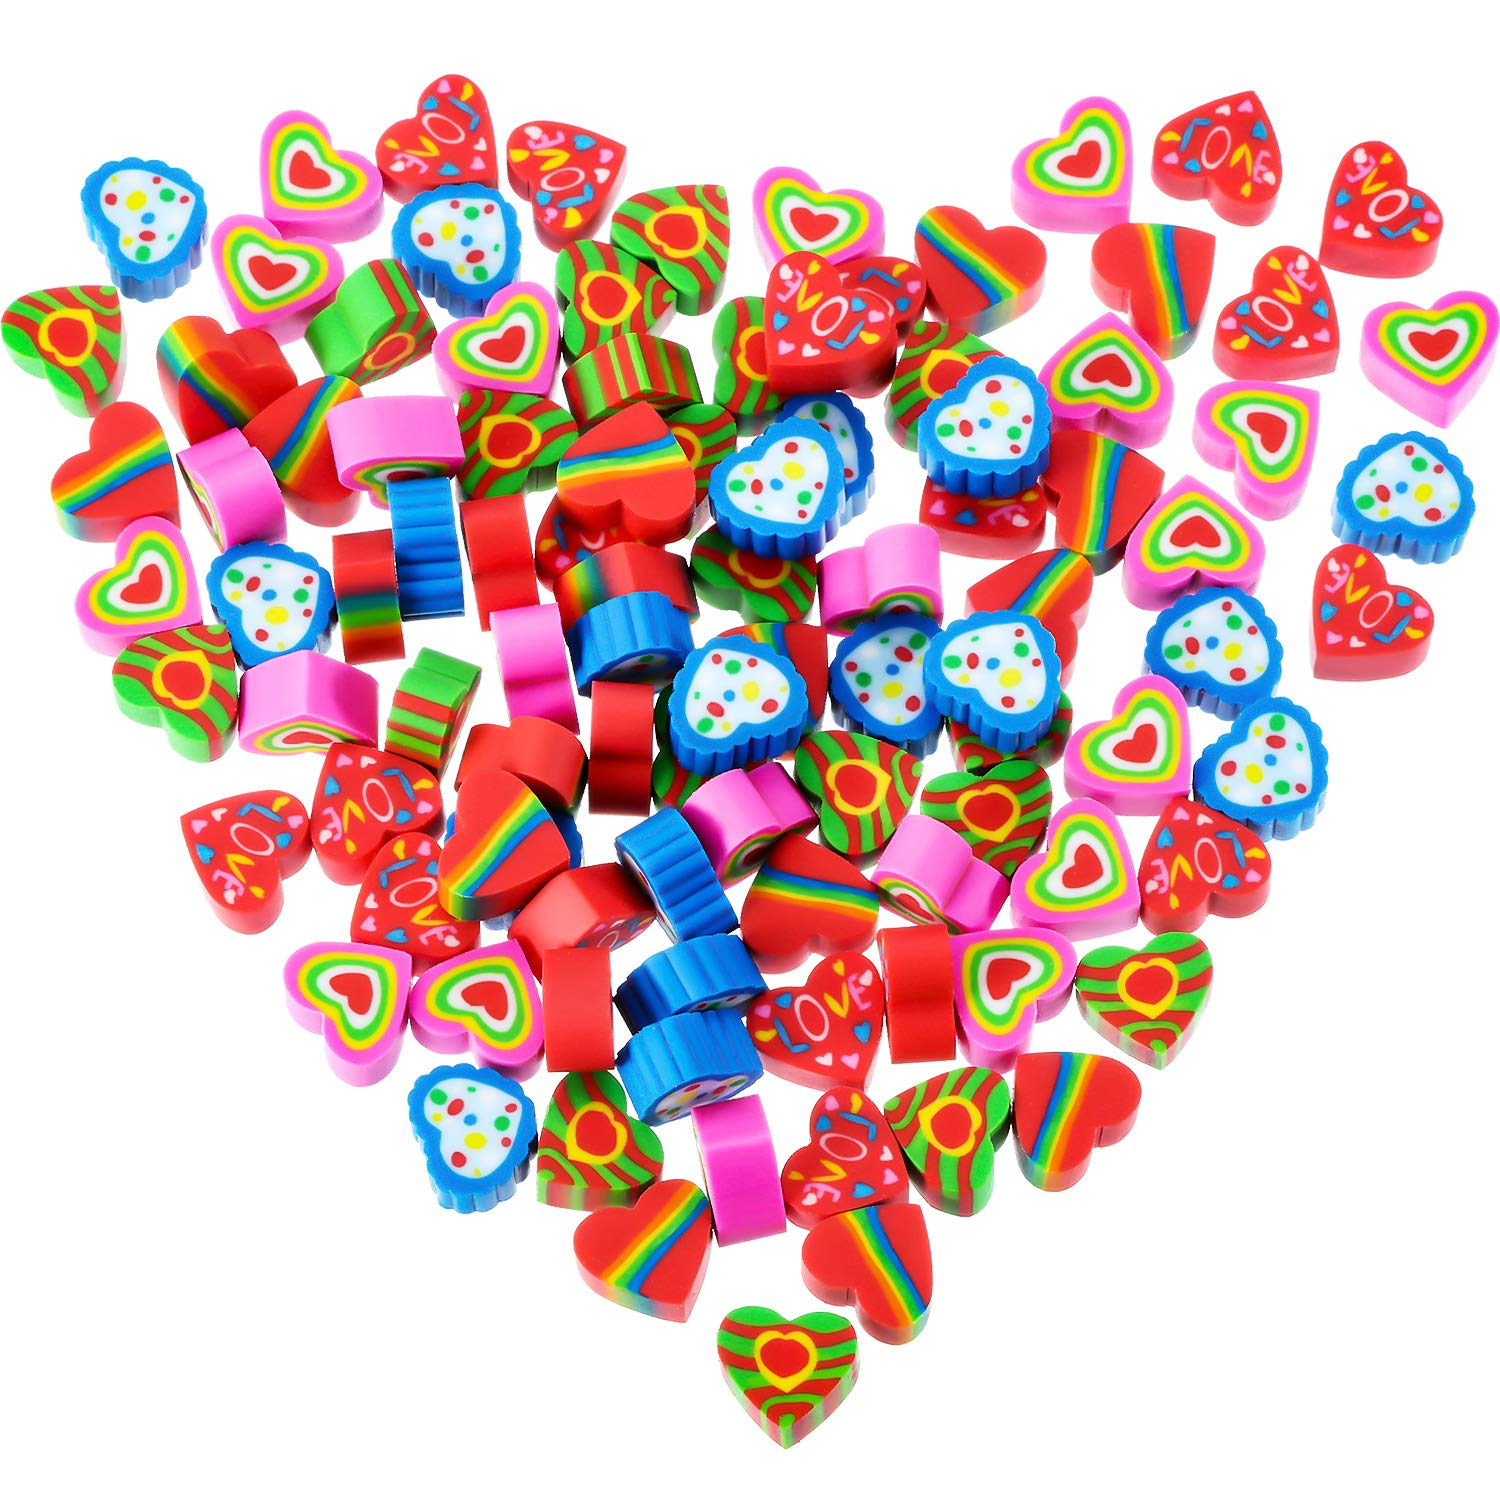 100 Pieces Mini Erasers Assortment Colorful Heart Erasers Novelty Heart Erasers für Party Favors, Homework Rewards, Gift Filling und Kunst Supplies (Style 1, 100 Pieces)